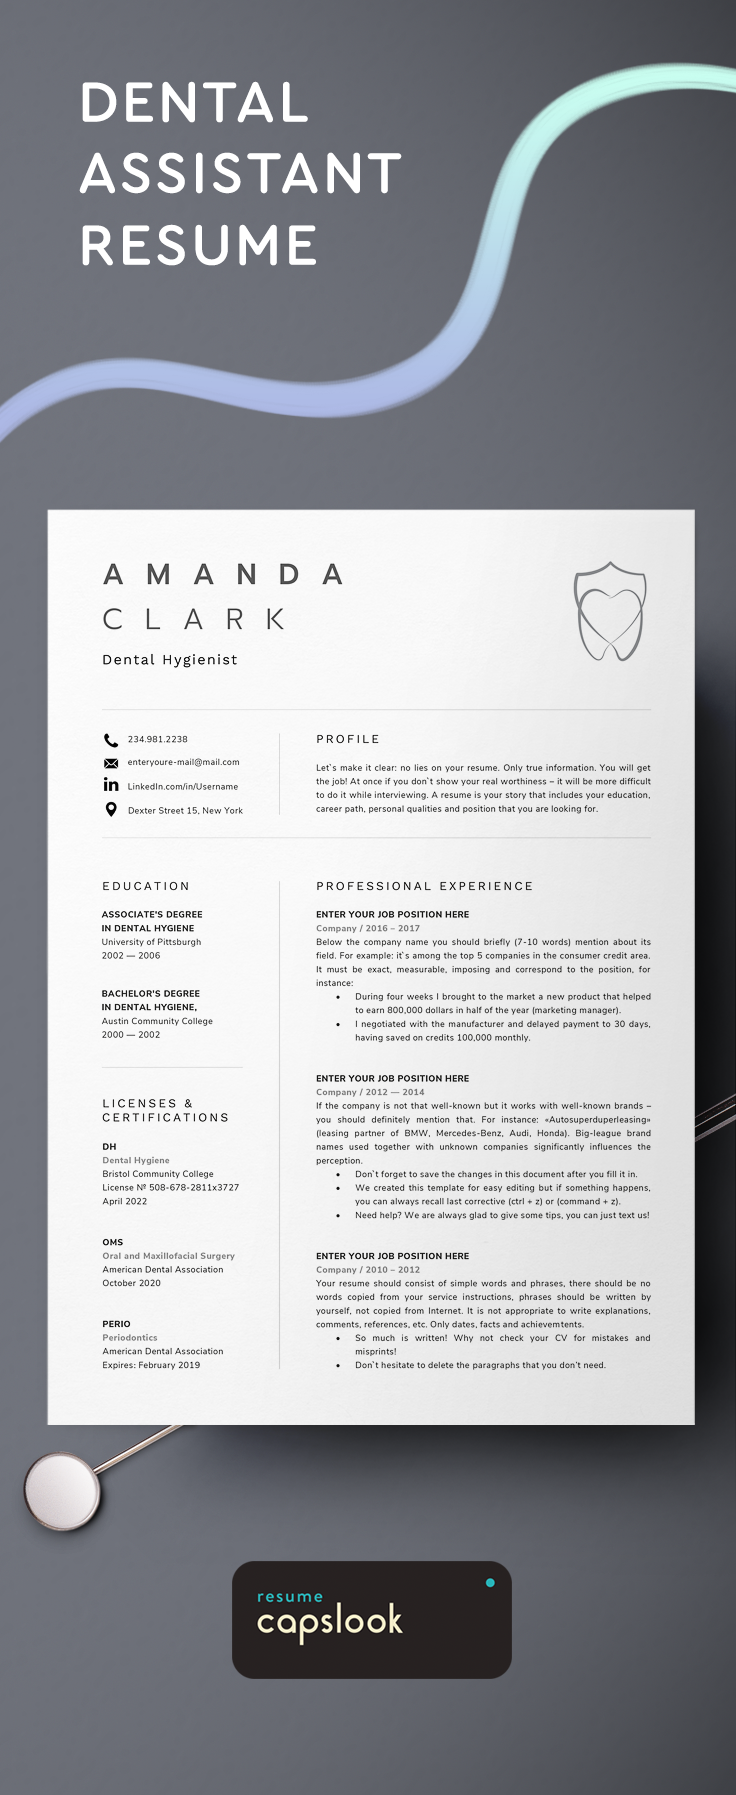 Dental Assistant Dentist Hygiene Resume Template For Microsoft Word Dentaloffice